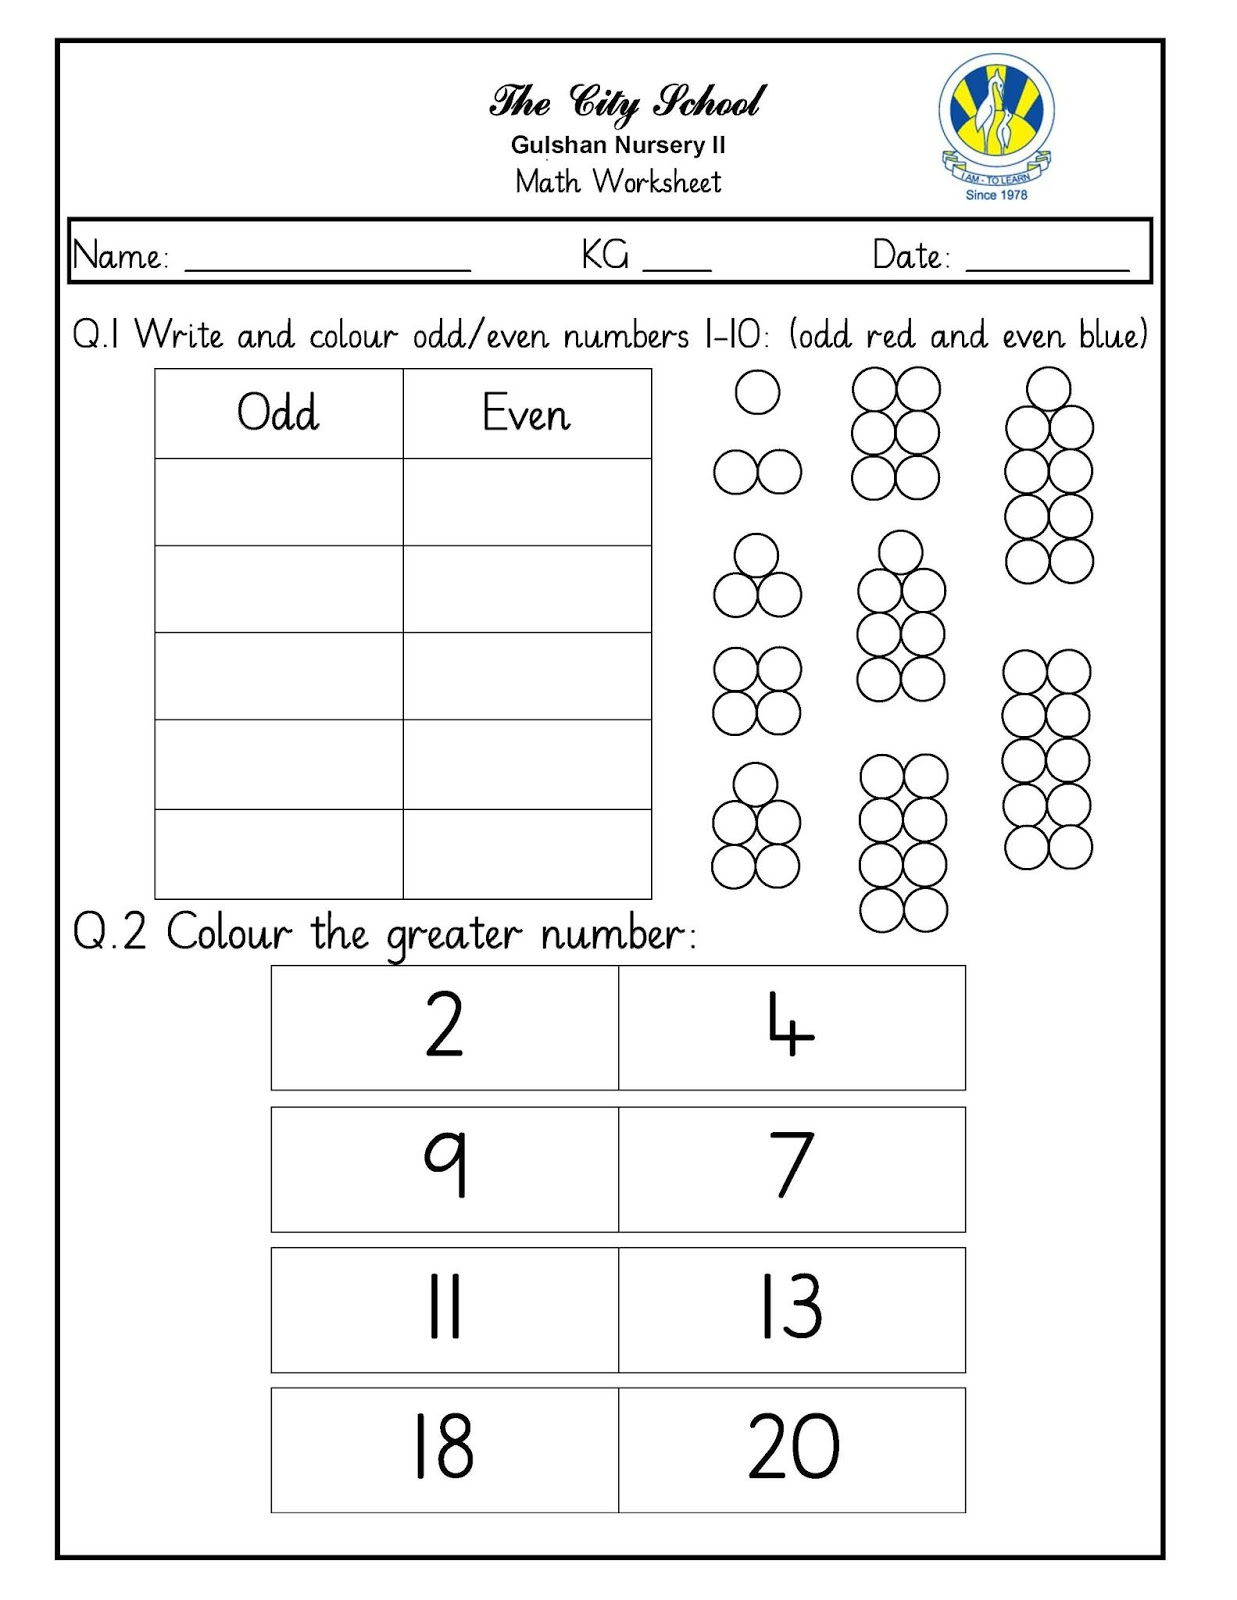 Sr Gulshan The City Nursery Ii Math Urdu And Colouring